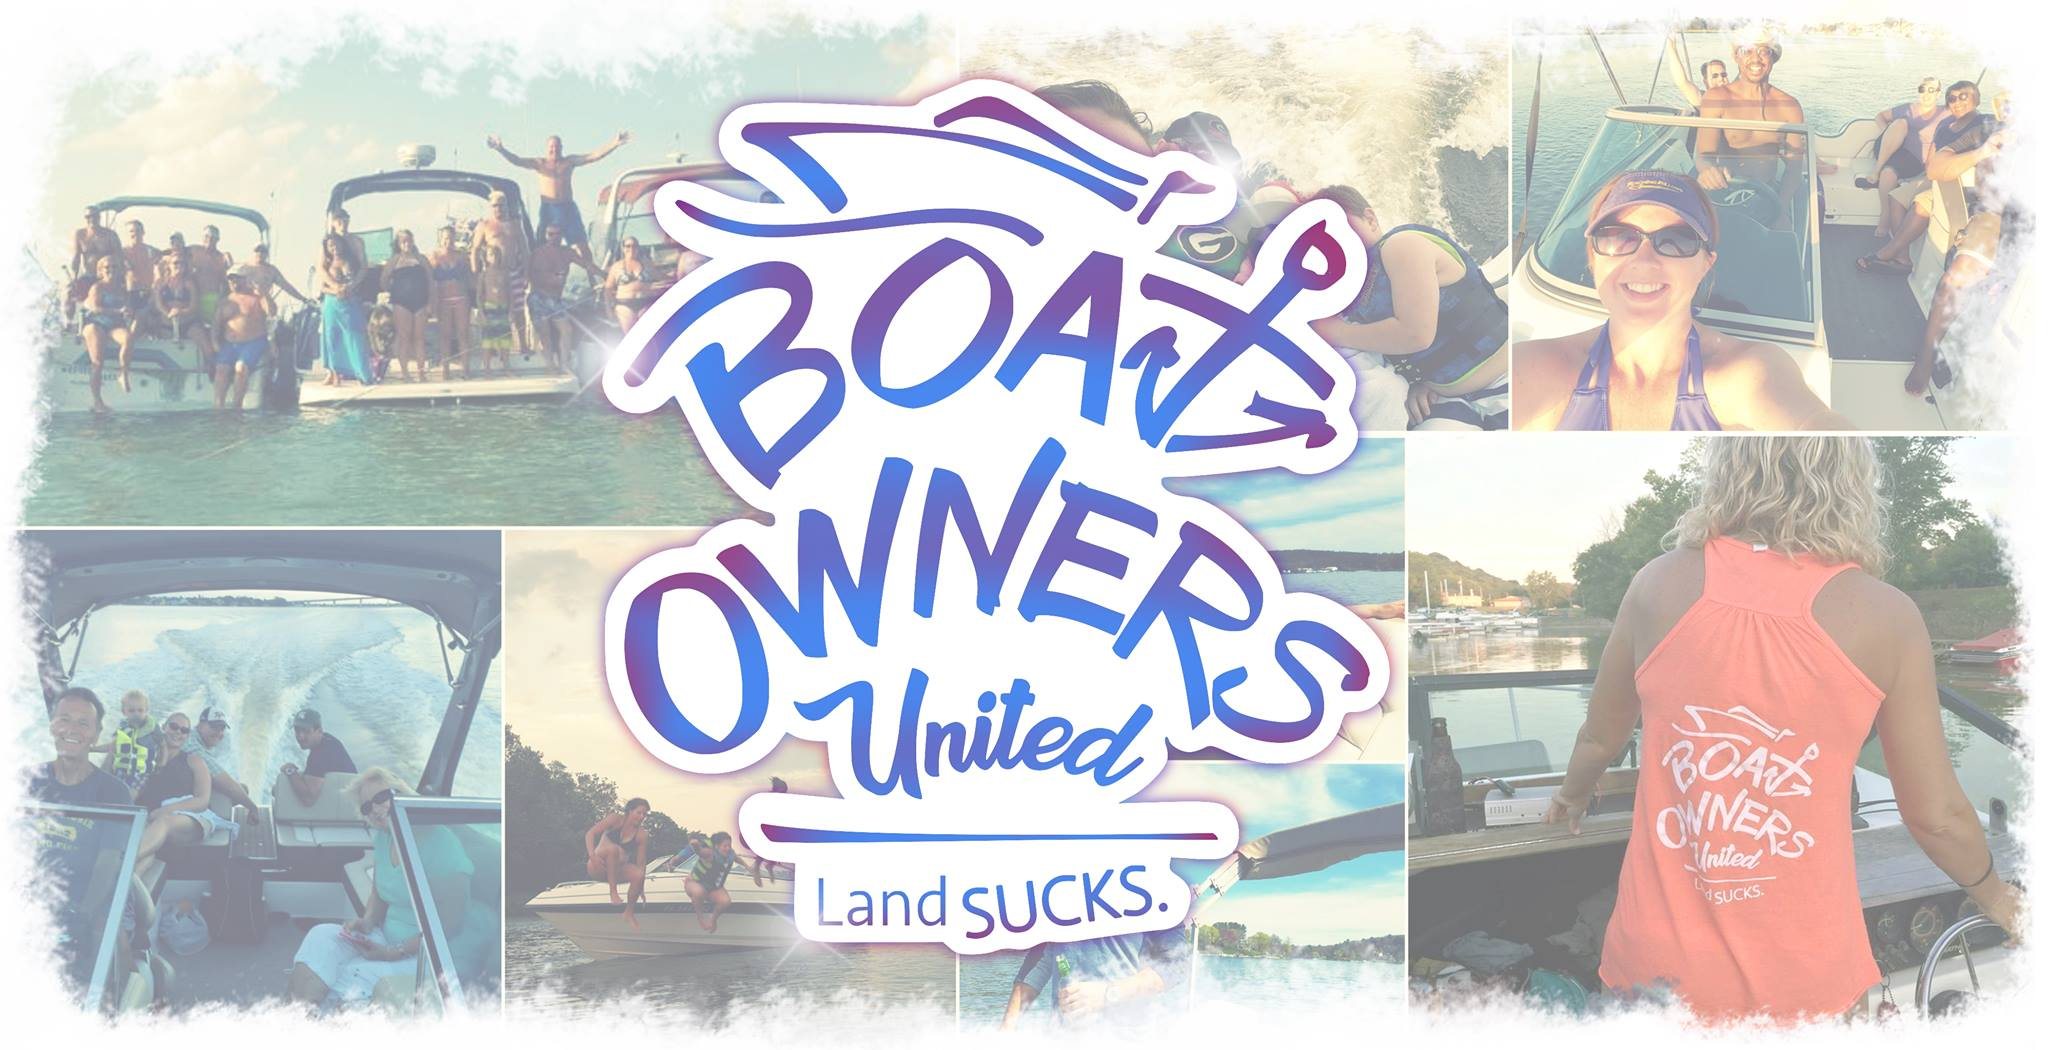 Boat Owners United